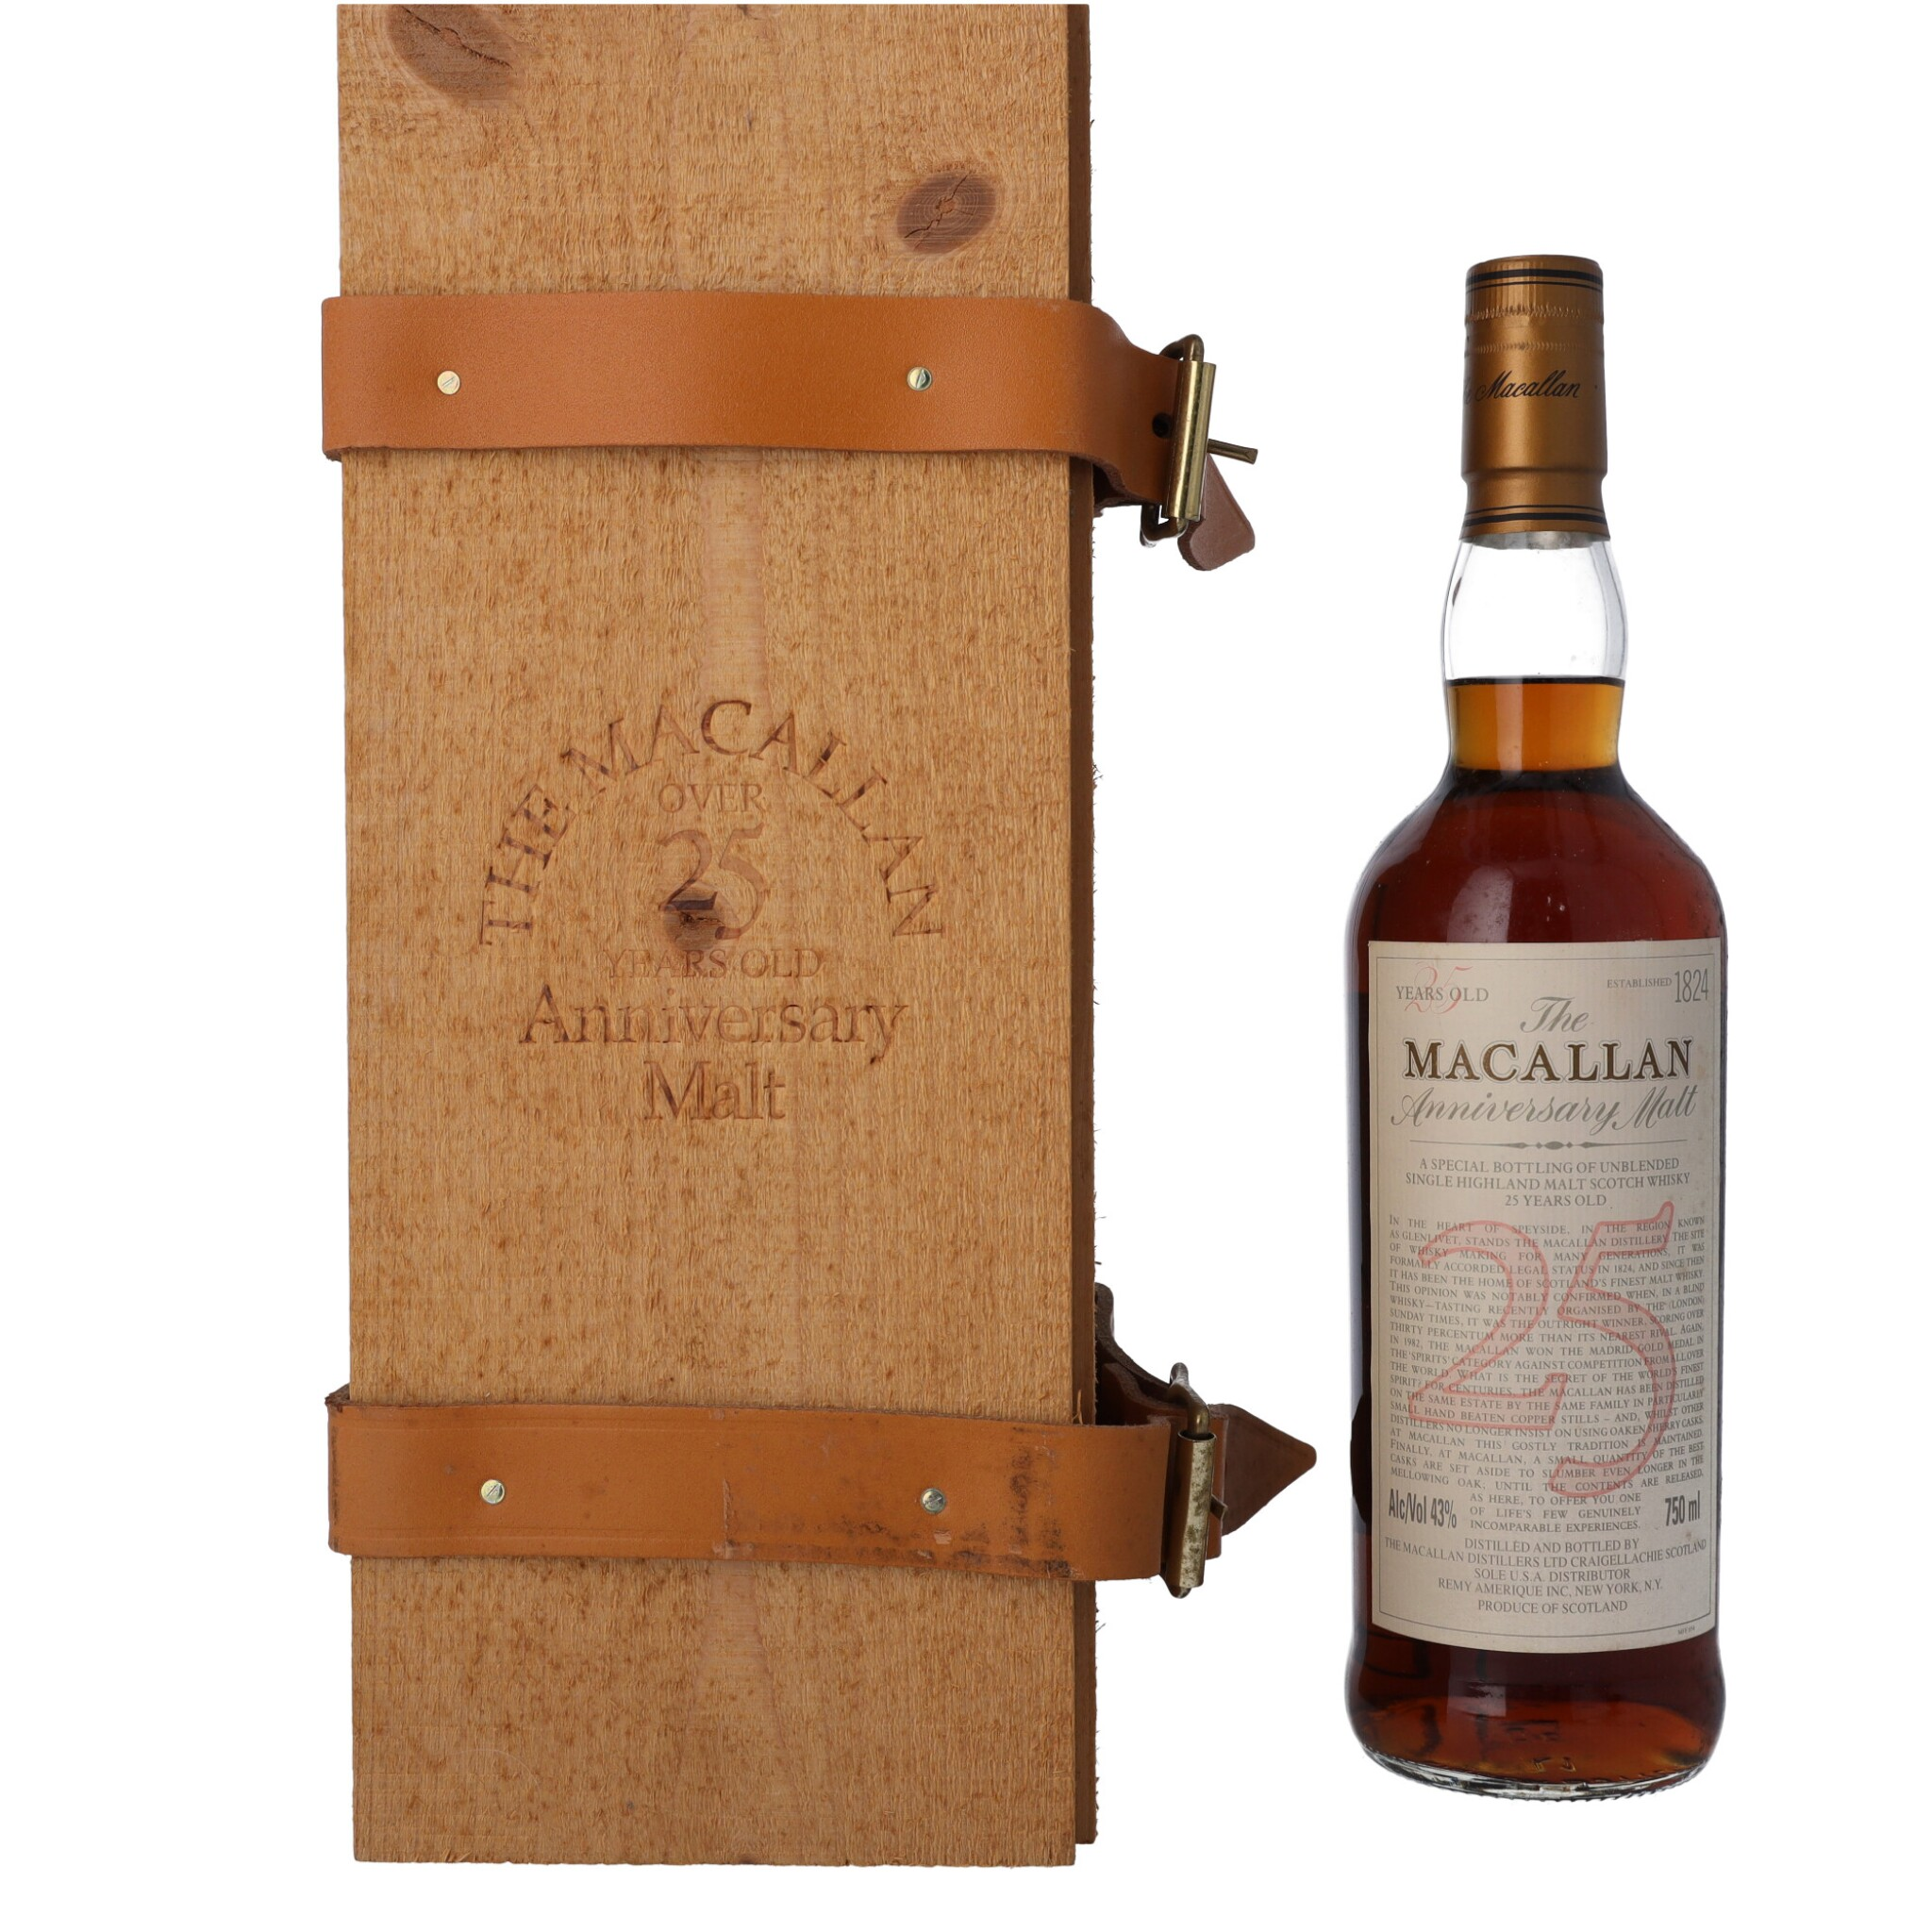 View full screen - View 1 of Lot 15. The Macallan 25 Year Old Anniversary Malt 43.0 abv NV (1 BT75).